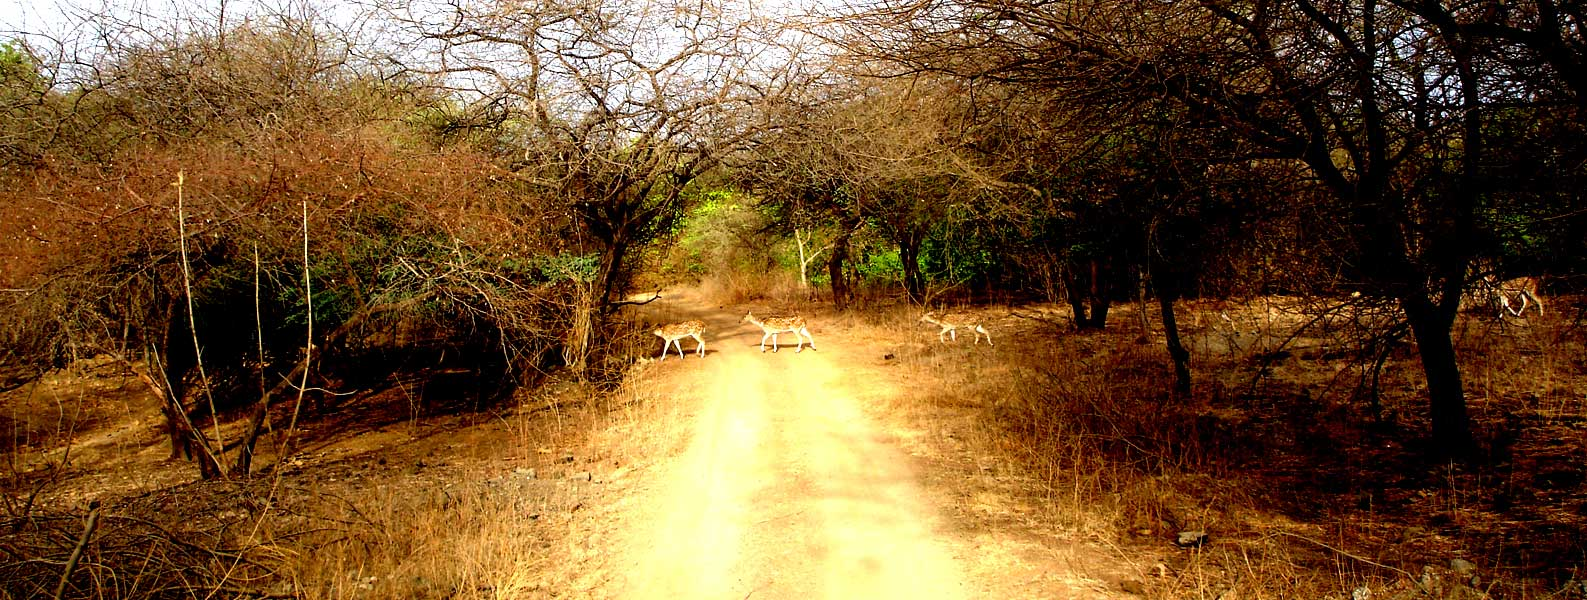 Gir Forest Circuit – A Motorcycle Trip